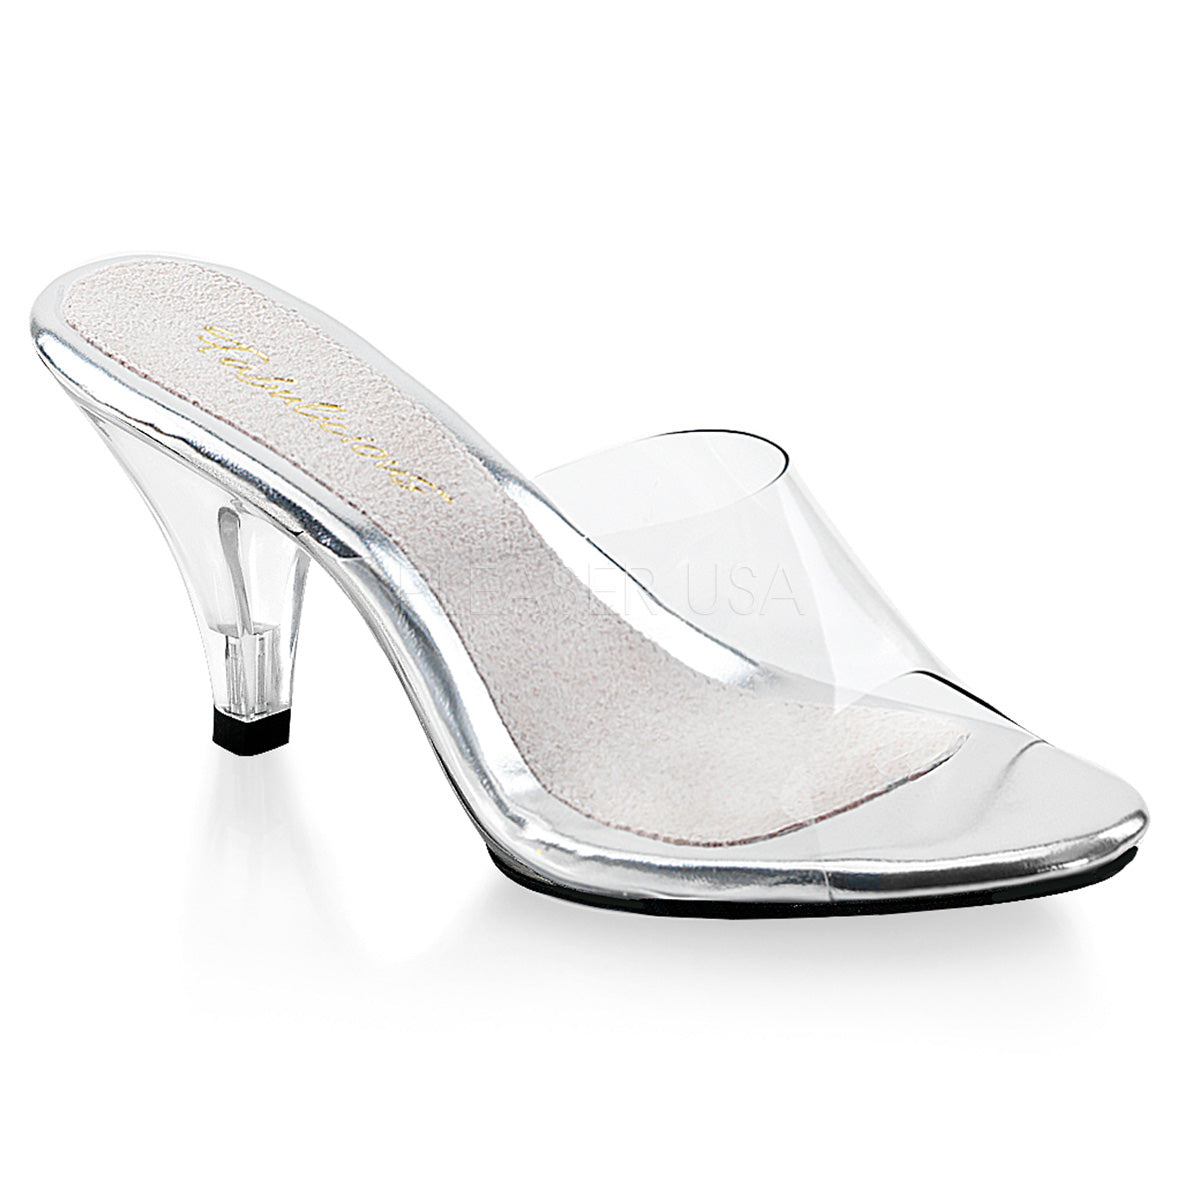 Clear Slipper Shoes with 3-inch Clear